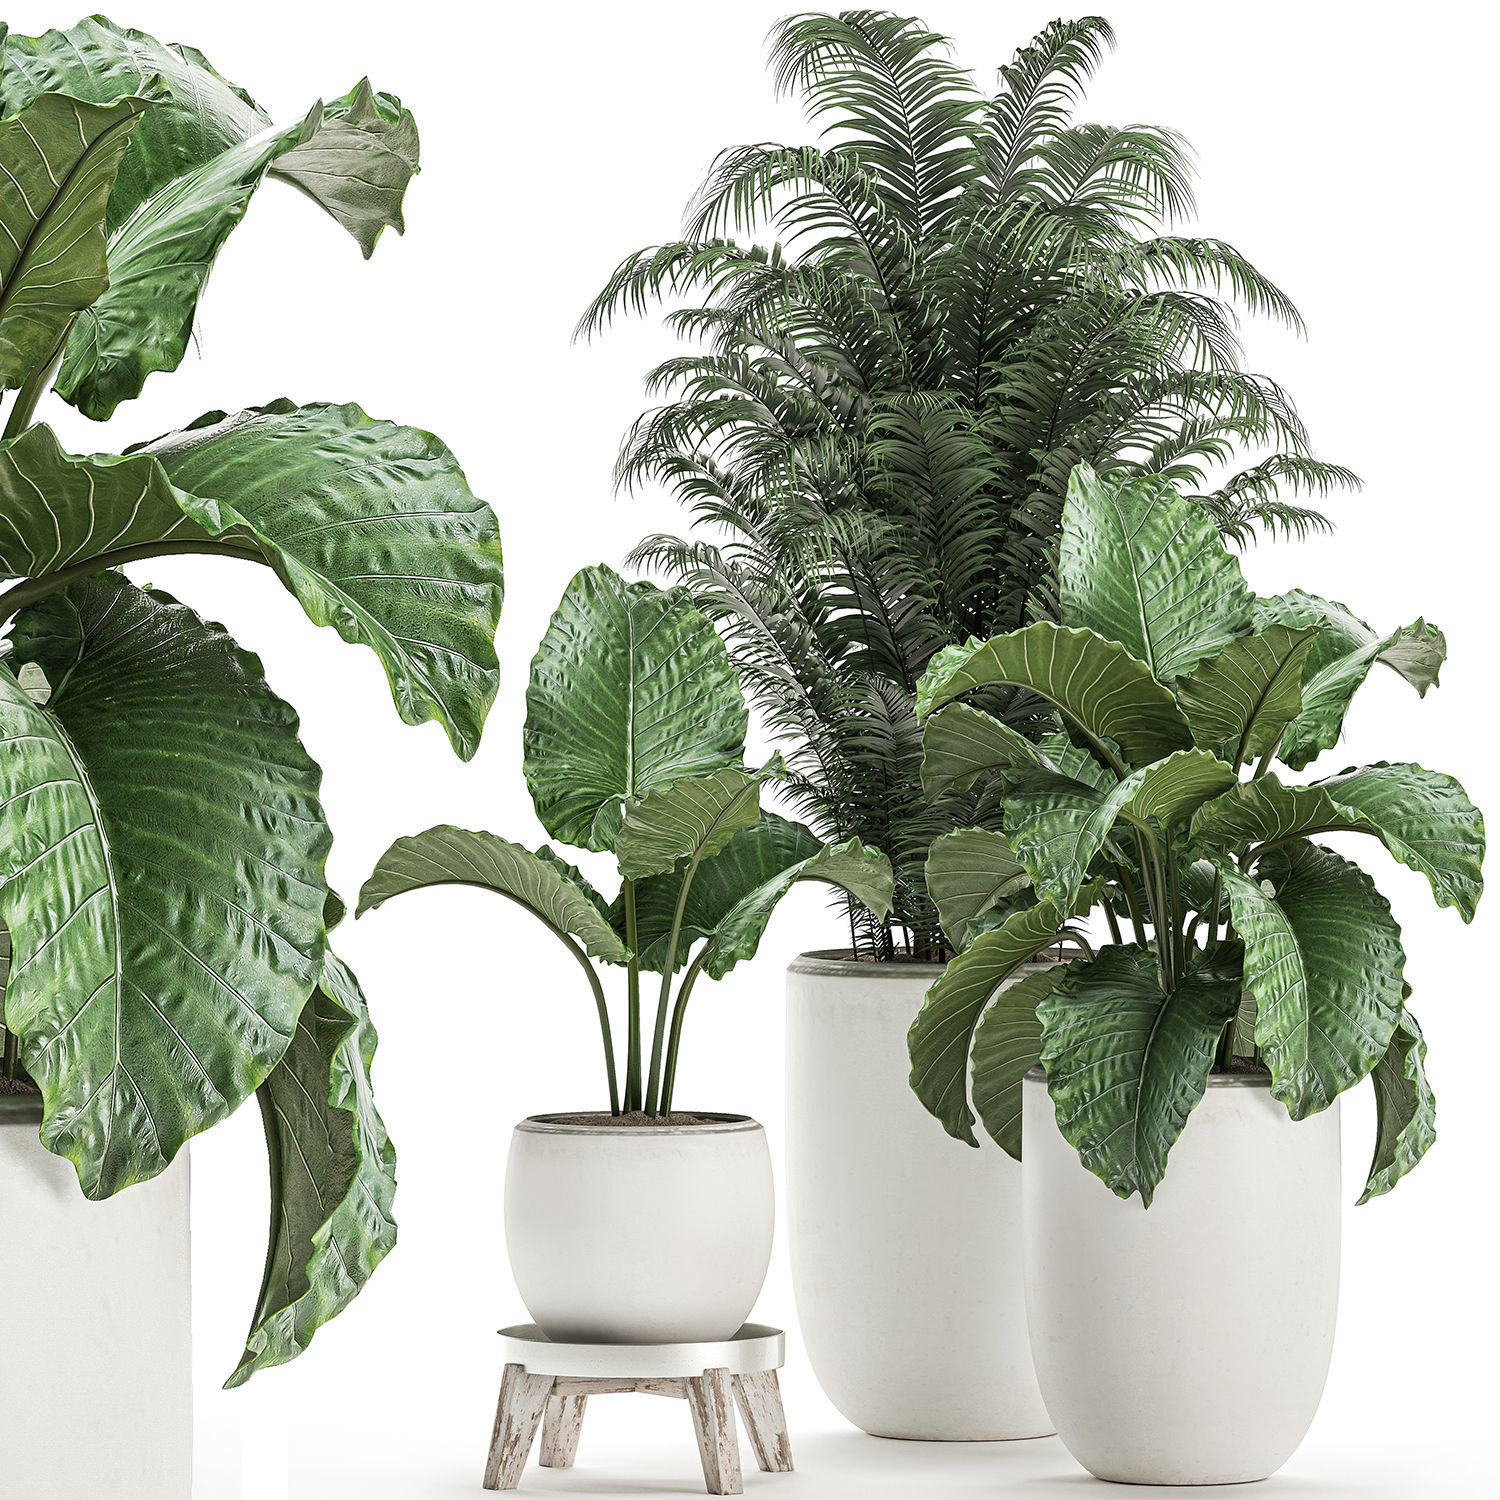 Plants in a white flowerpot for decor and interior design 504